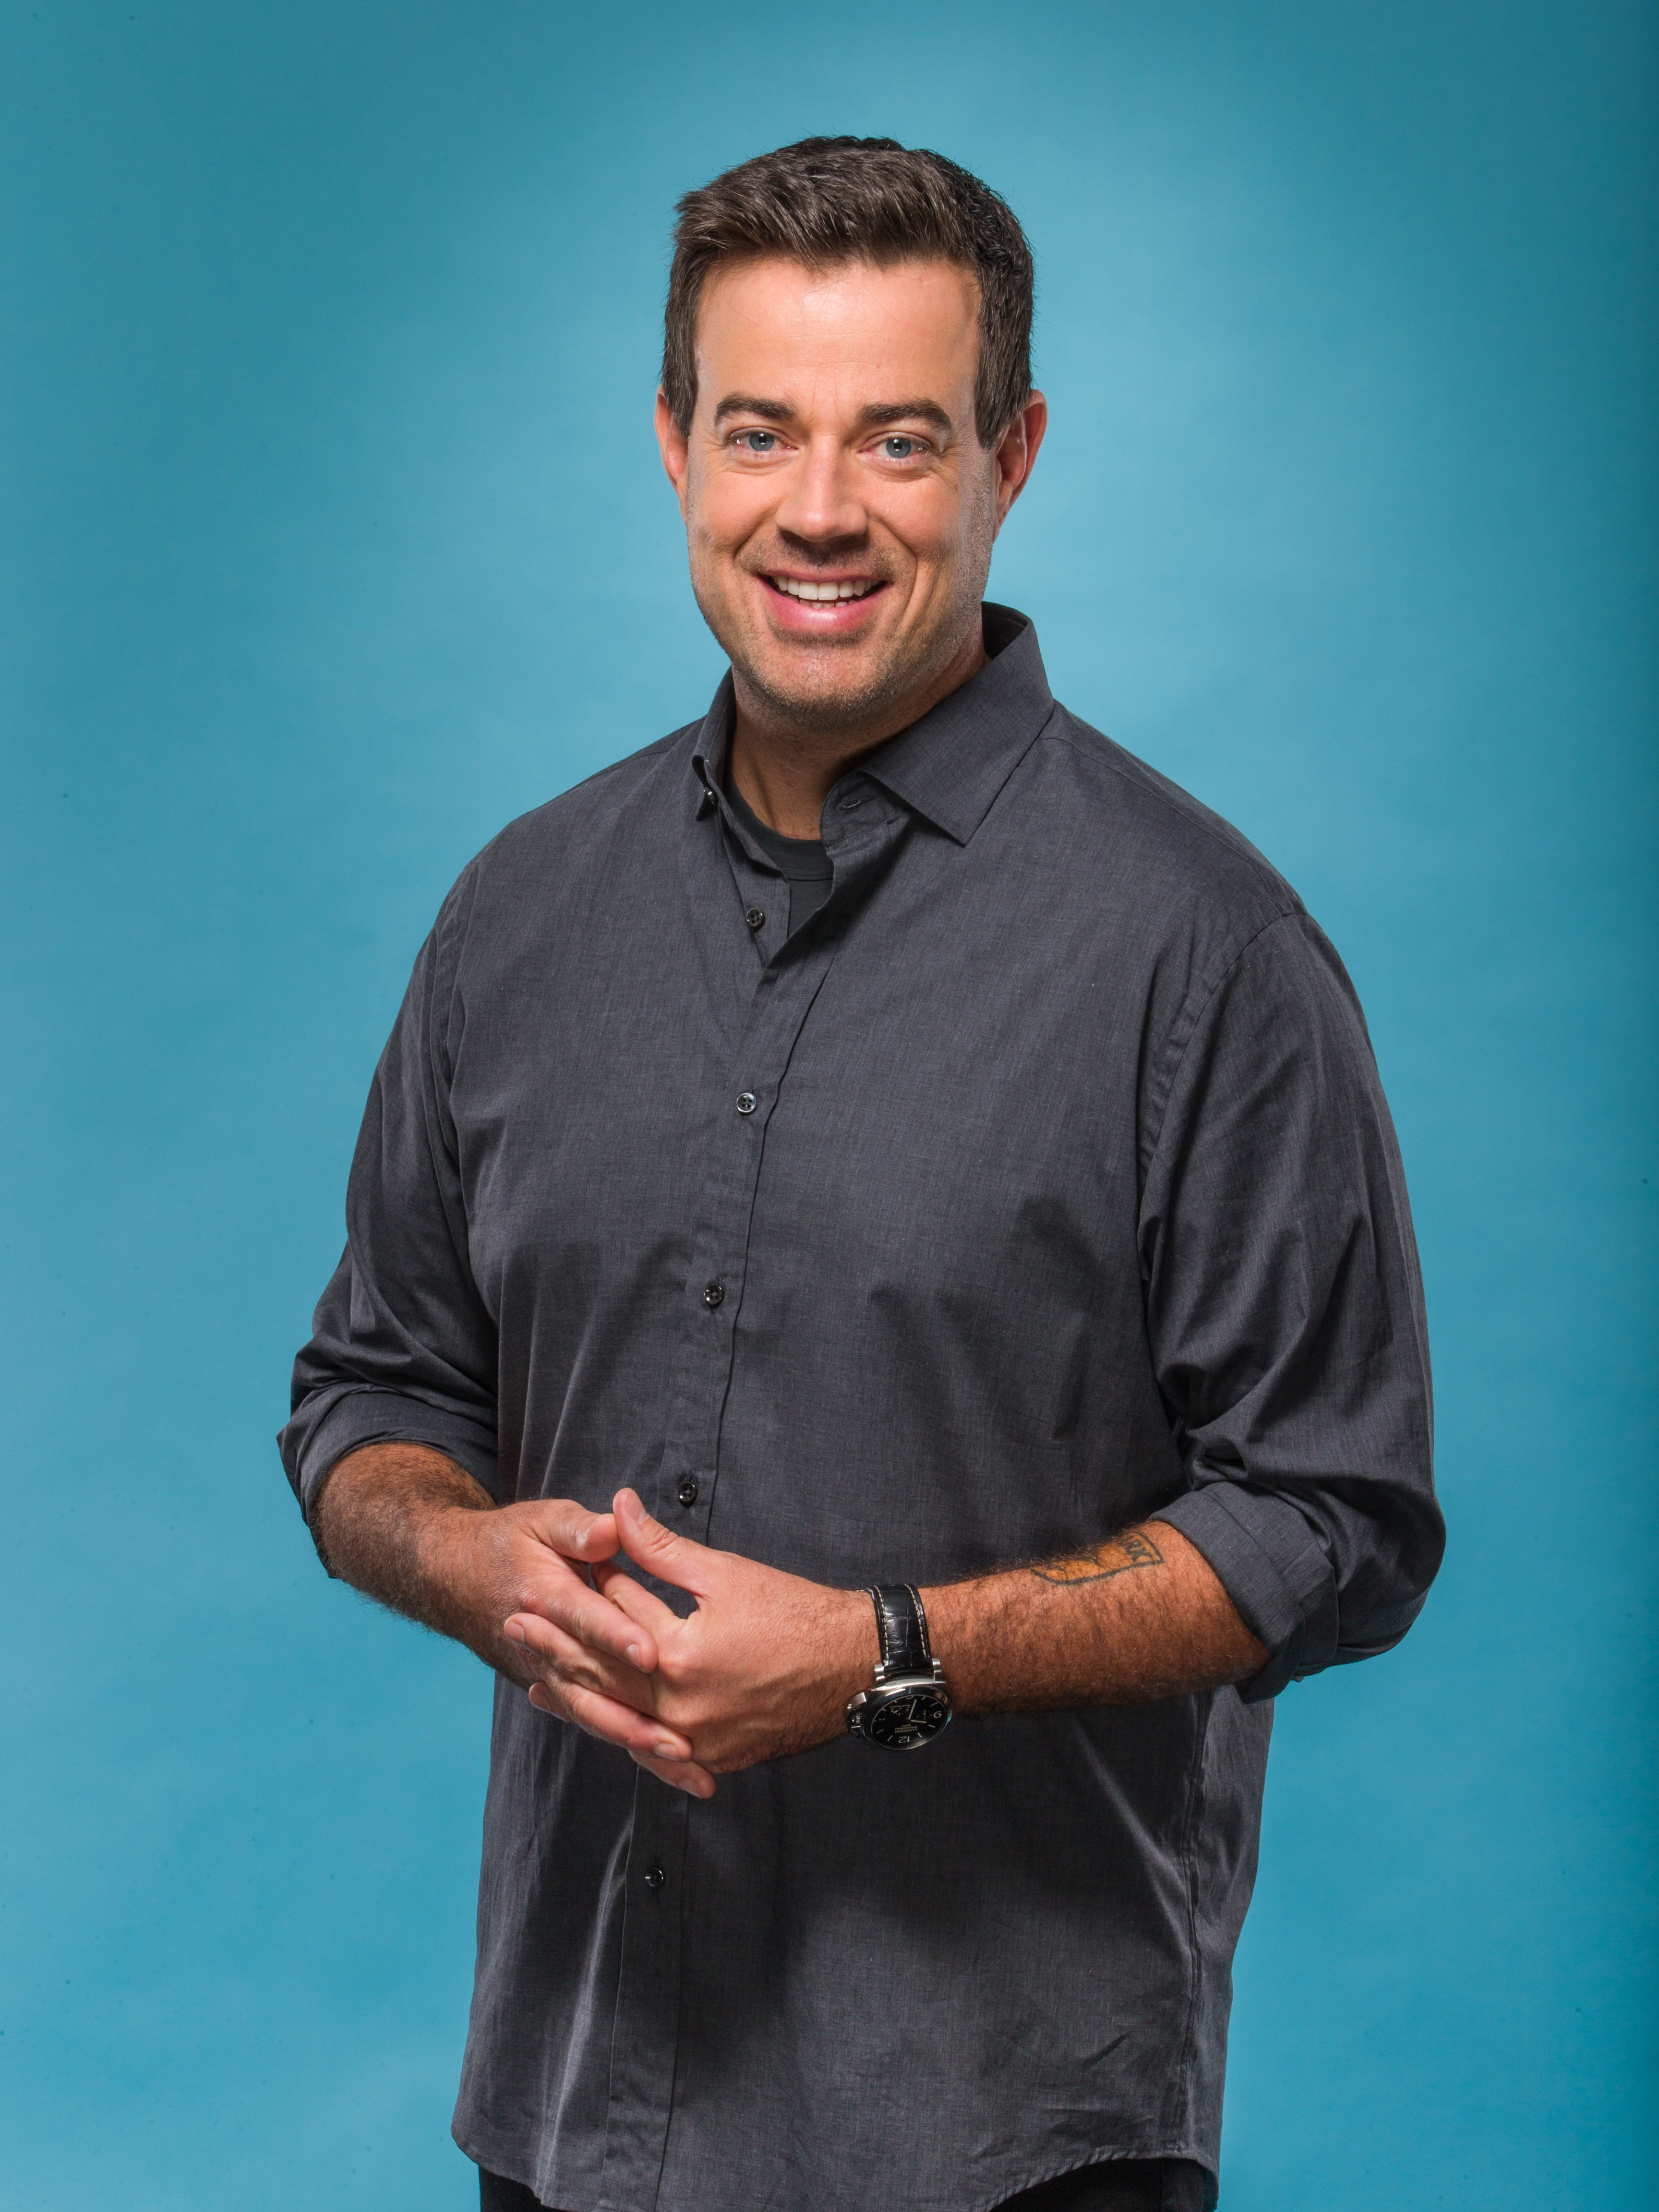 Carson Daly S Mom Wrote A Moving Goodbye Letter Nearly 20 Years Ago